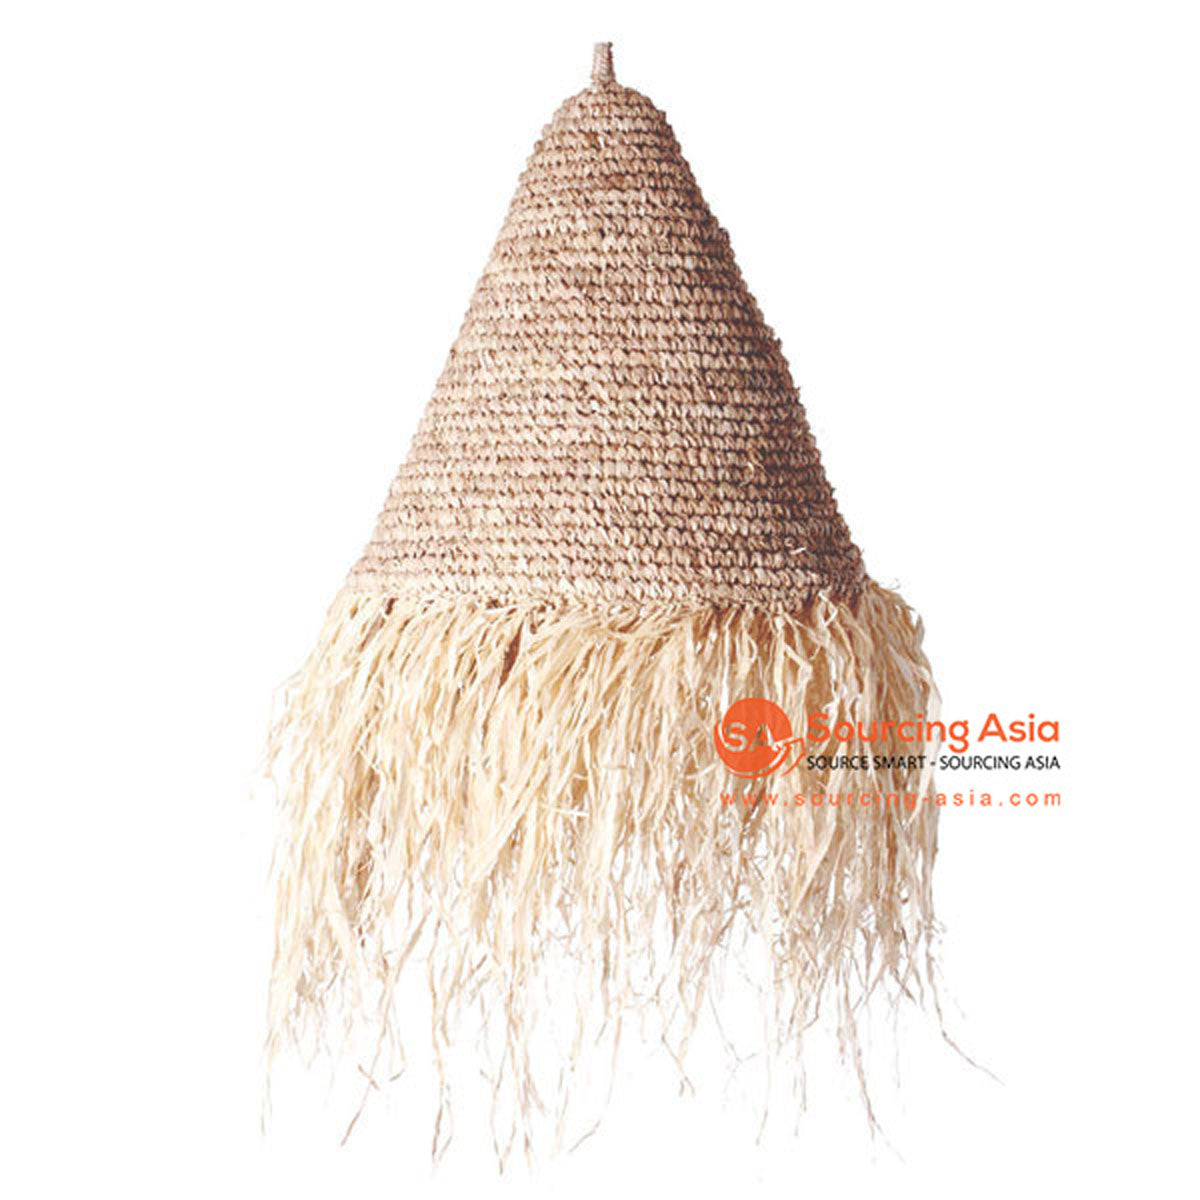 SHL063-7 NATURAL LEAF PENDANT LAMP WITH FRINGE